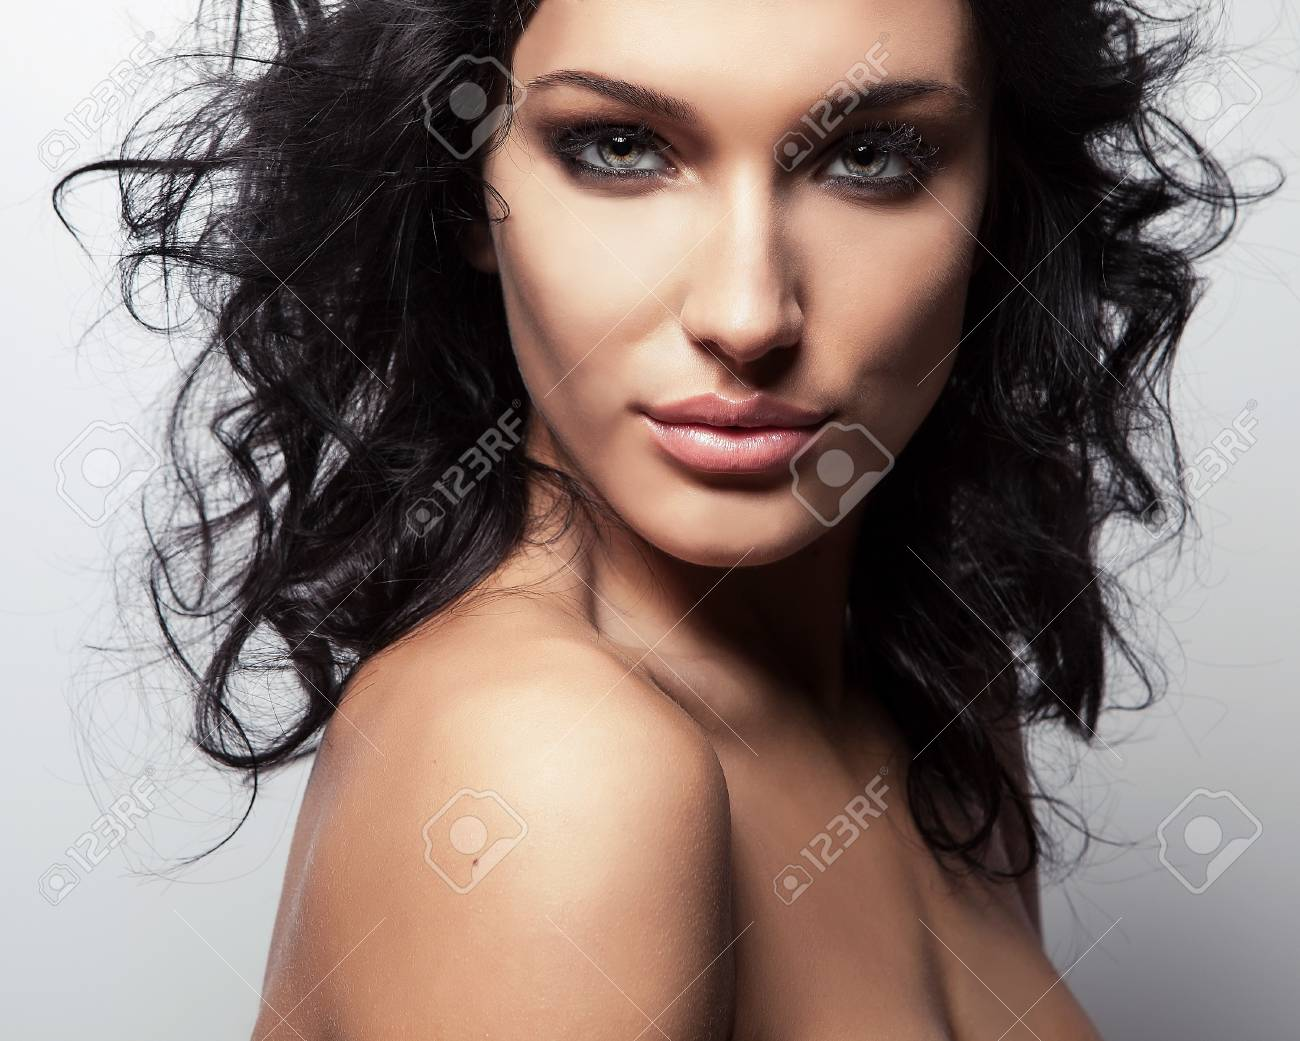 Portrait of a young beauty  Close-up Photo Stock Photo - 16958225